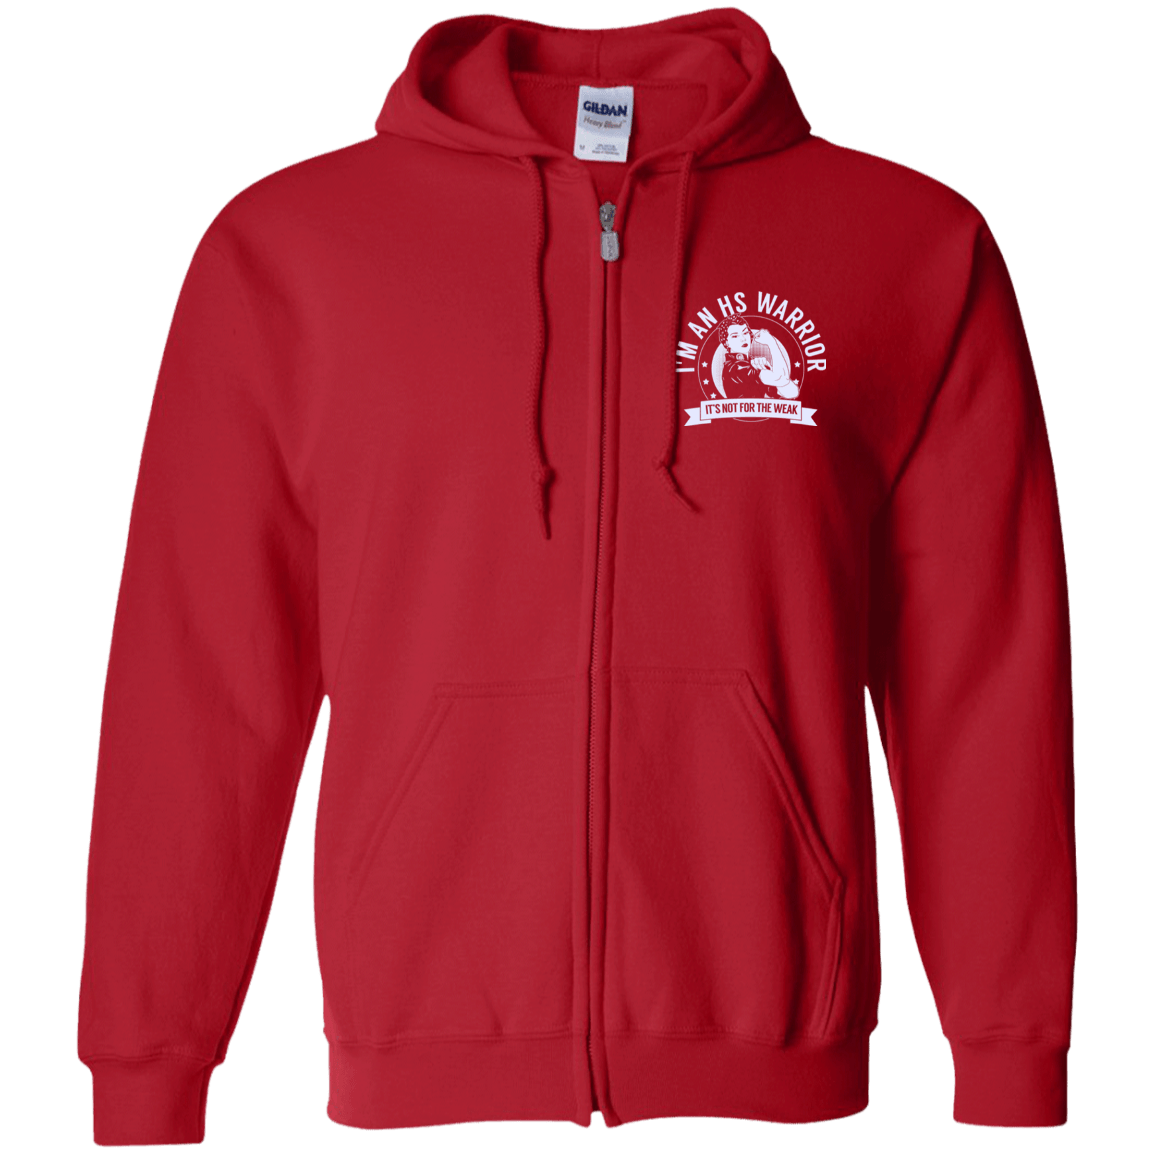 Sweatshirts - Hidradenitis Suppurativa - HS Warrior NFTW Zip Up Hooded Sweatshirt